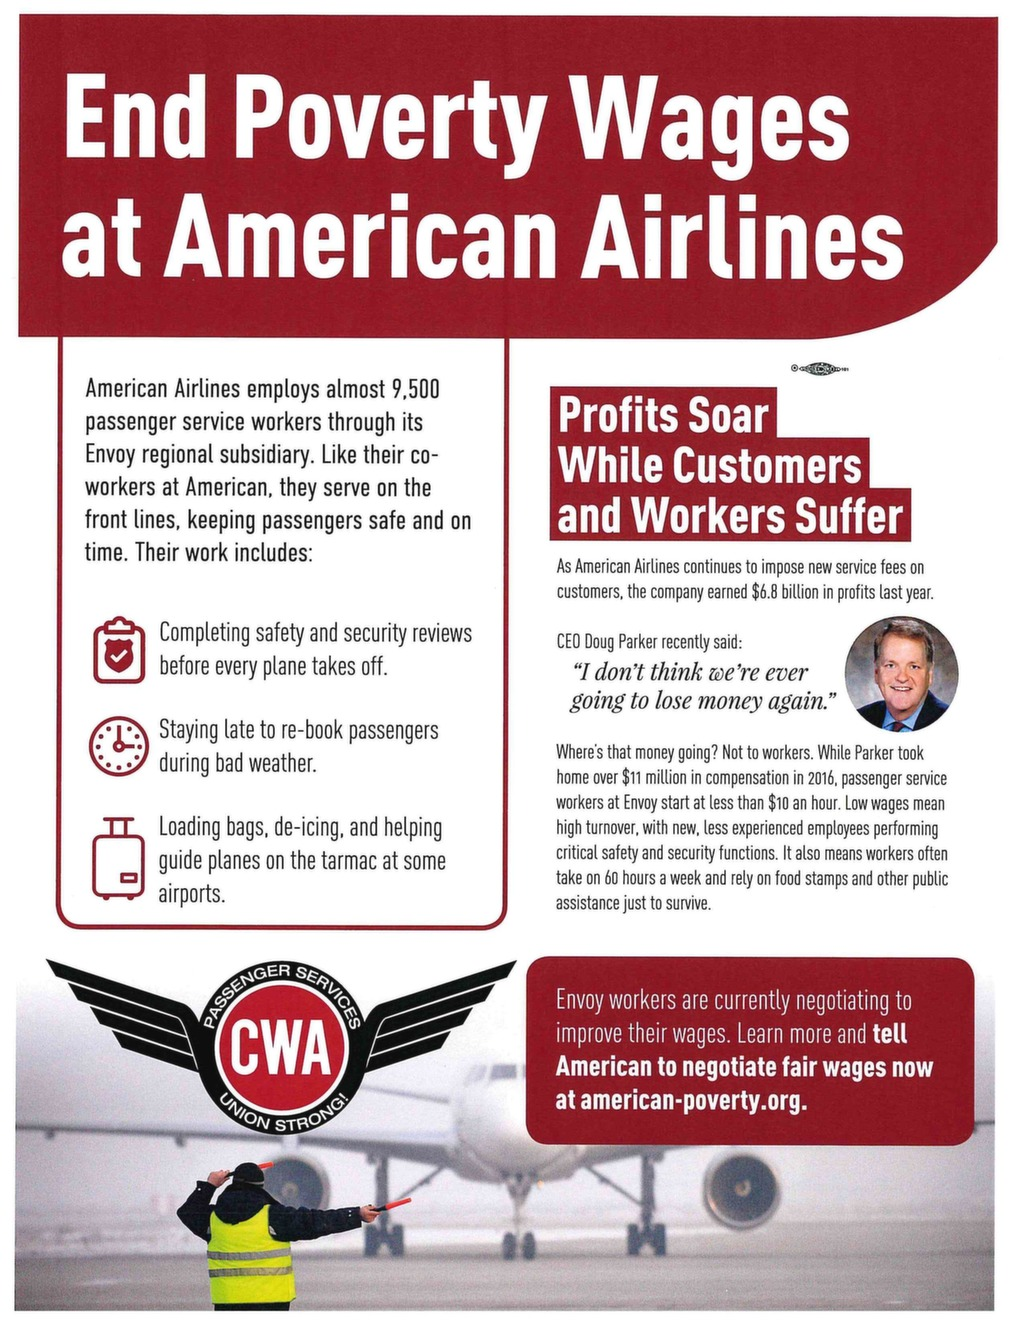 End Poverty Wages at American Airlines – CWA 9509